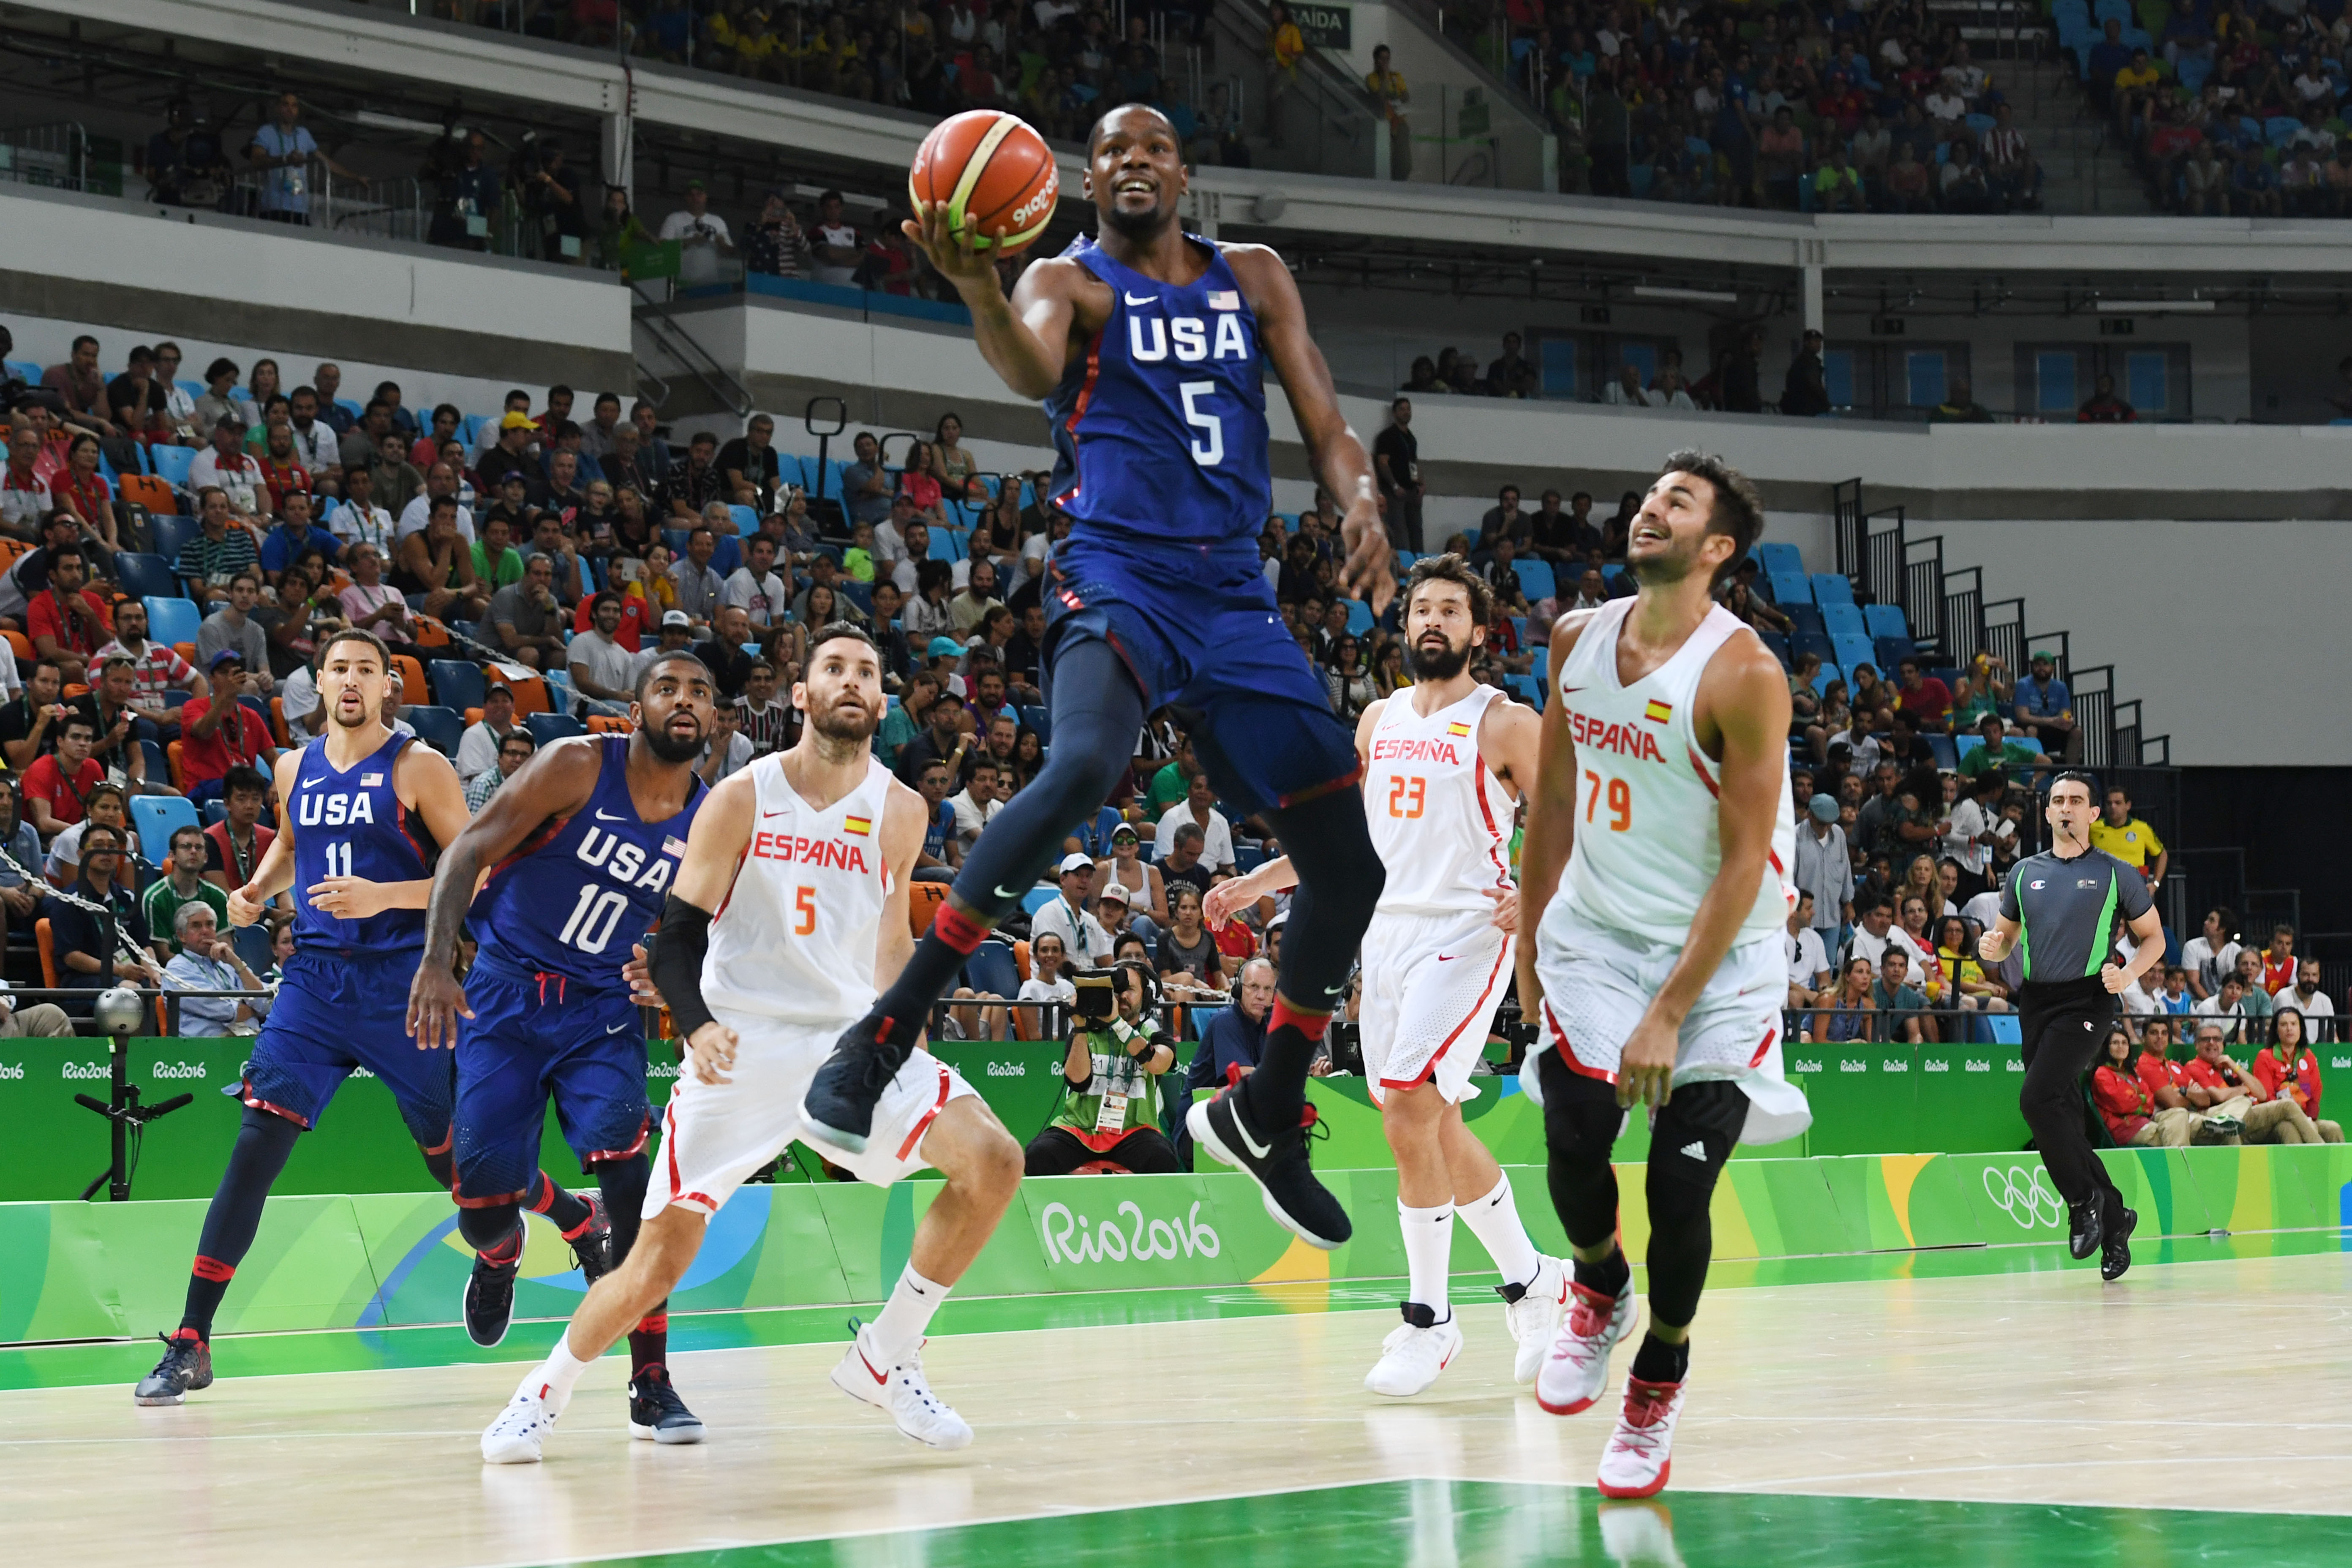 USA's guard Kevin Durant (C) jumps for a basket during a Men's semifinal basketball match between Spain and USA at the Carioca Arena 1 in Rio de Janeiro on August 19, 2016 during the Rio 2016 Olympic Games.